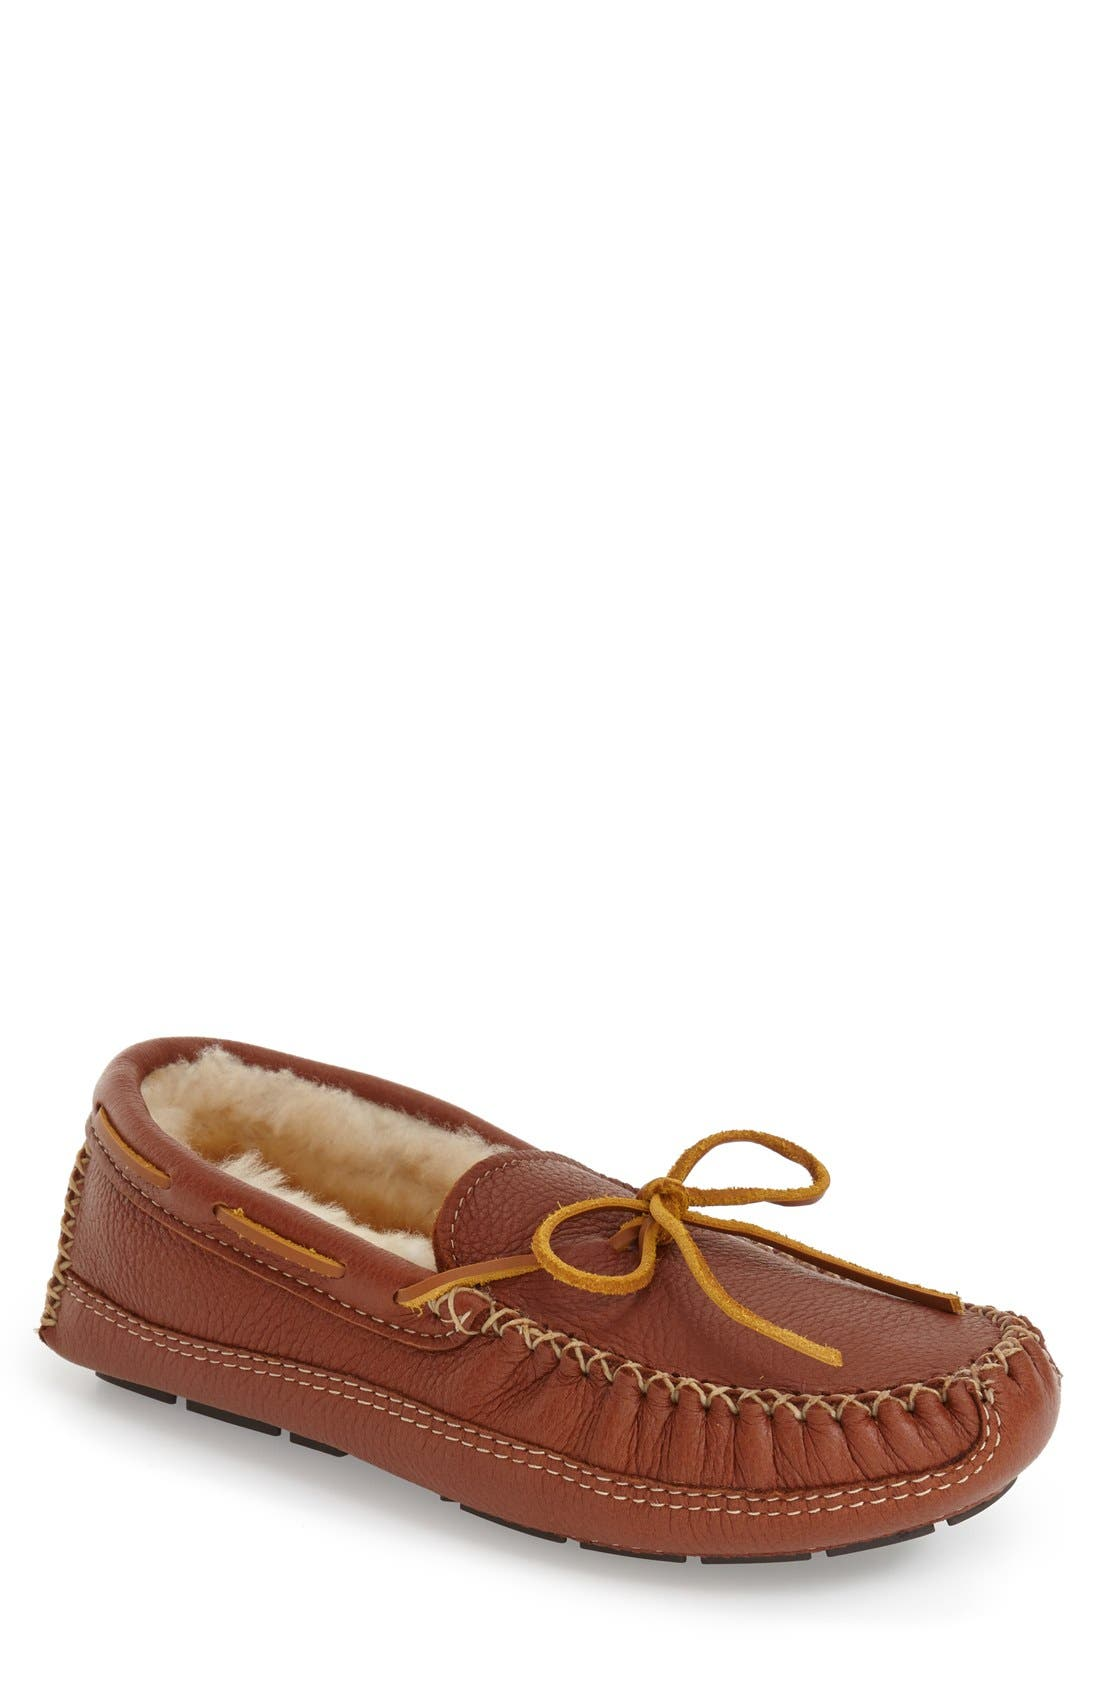 Genuine Shearling Lined Leather Slipper,                         Main,                         color, CARMEL